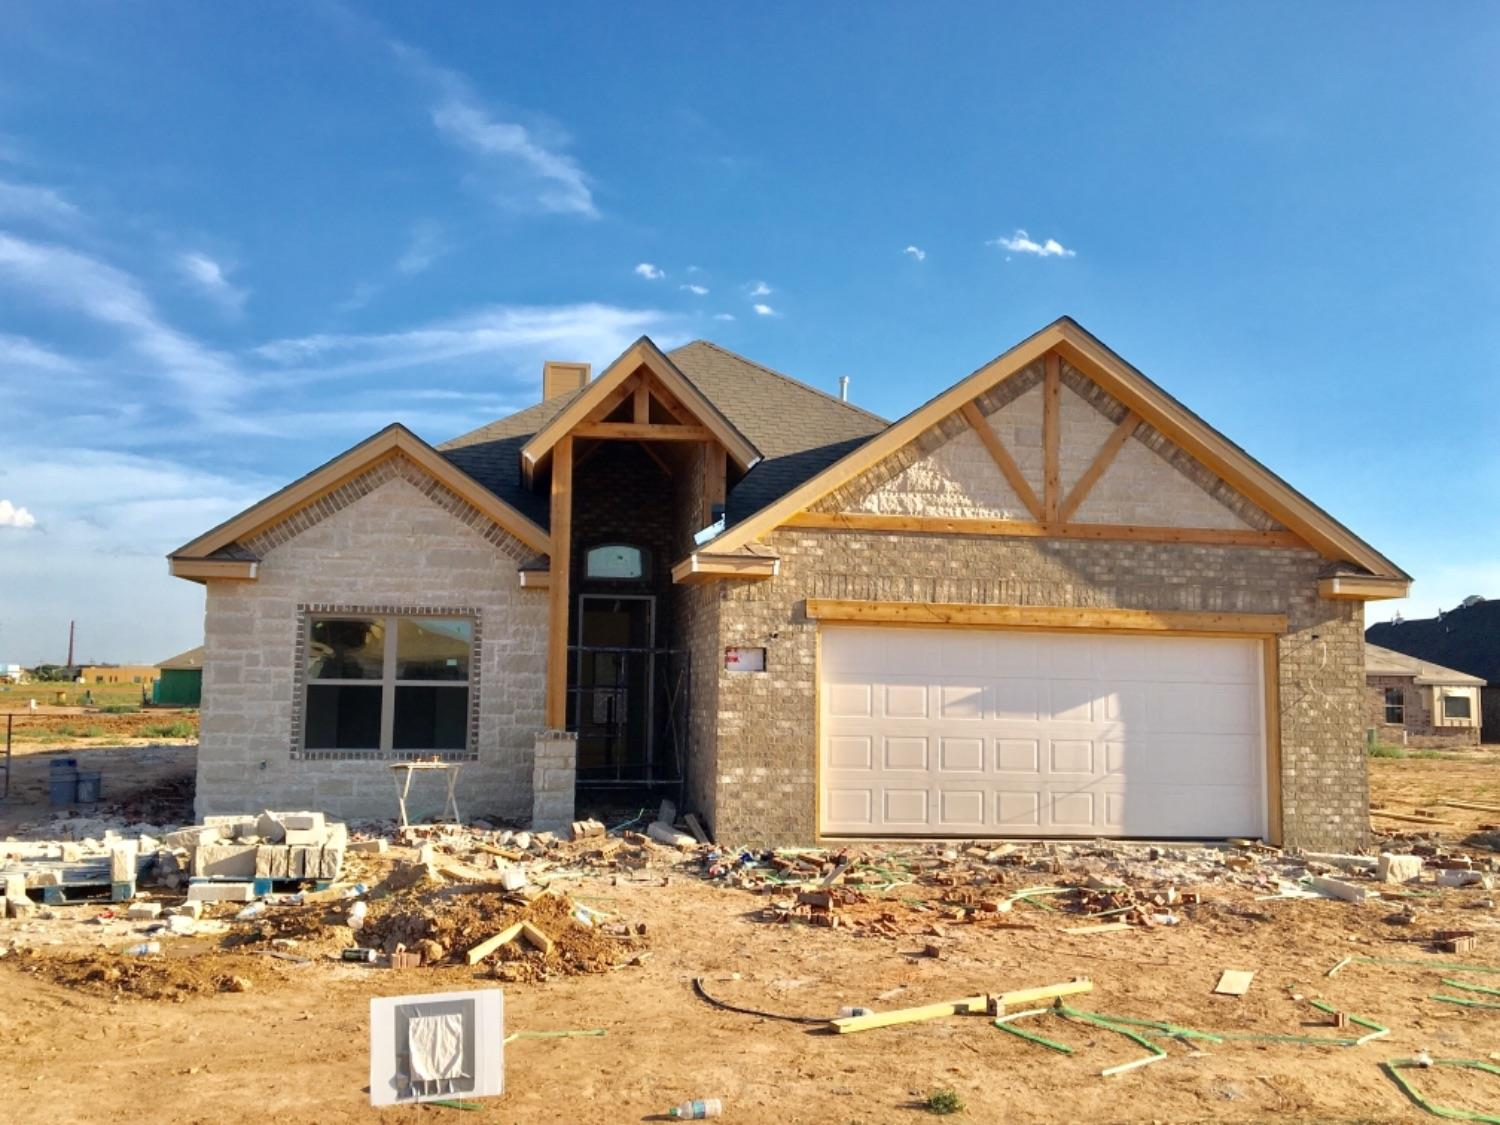 This 3 bedroom, 2 bath and 2 car garage is currently under construction in the new Uptown West Subdivision by trusted builder, M & M Homes. Construction has recently begun so bring your client to make color selections and finishing touches to give this beauty their own personal home experience.